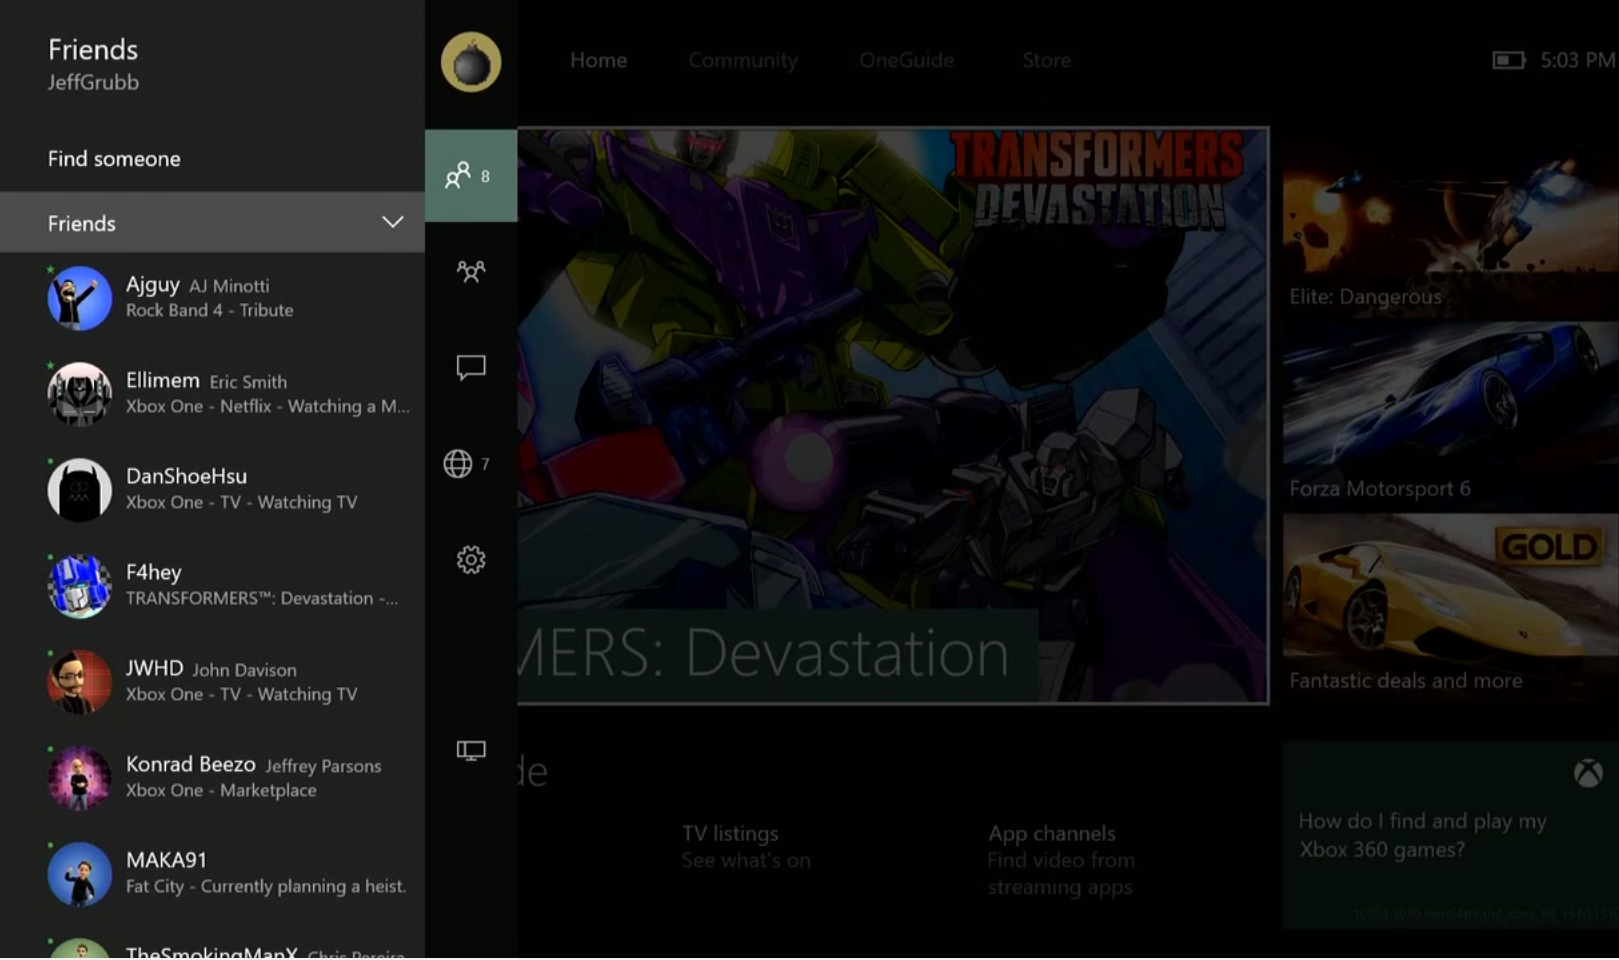 Hands-on with the new Xbox One experience -- see what's